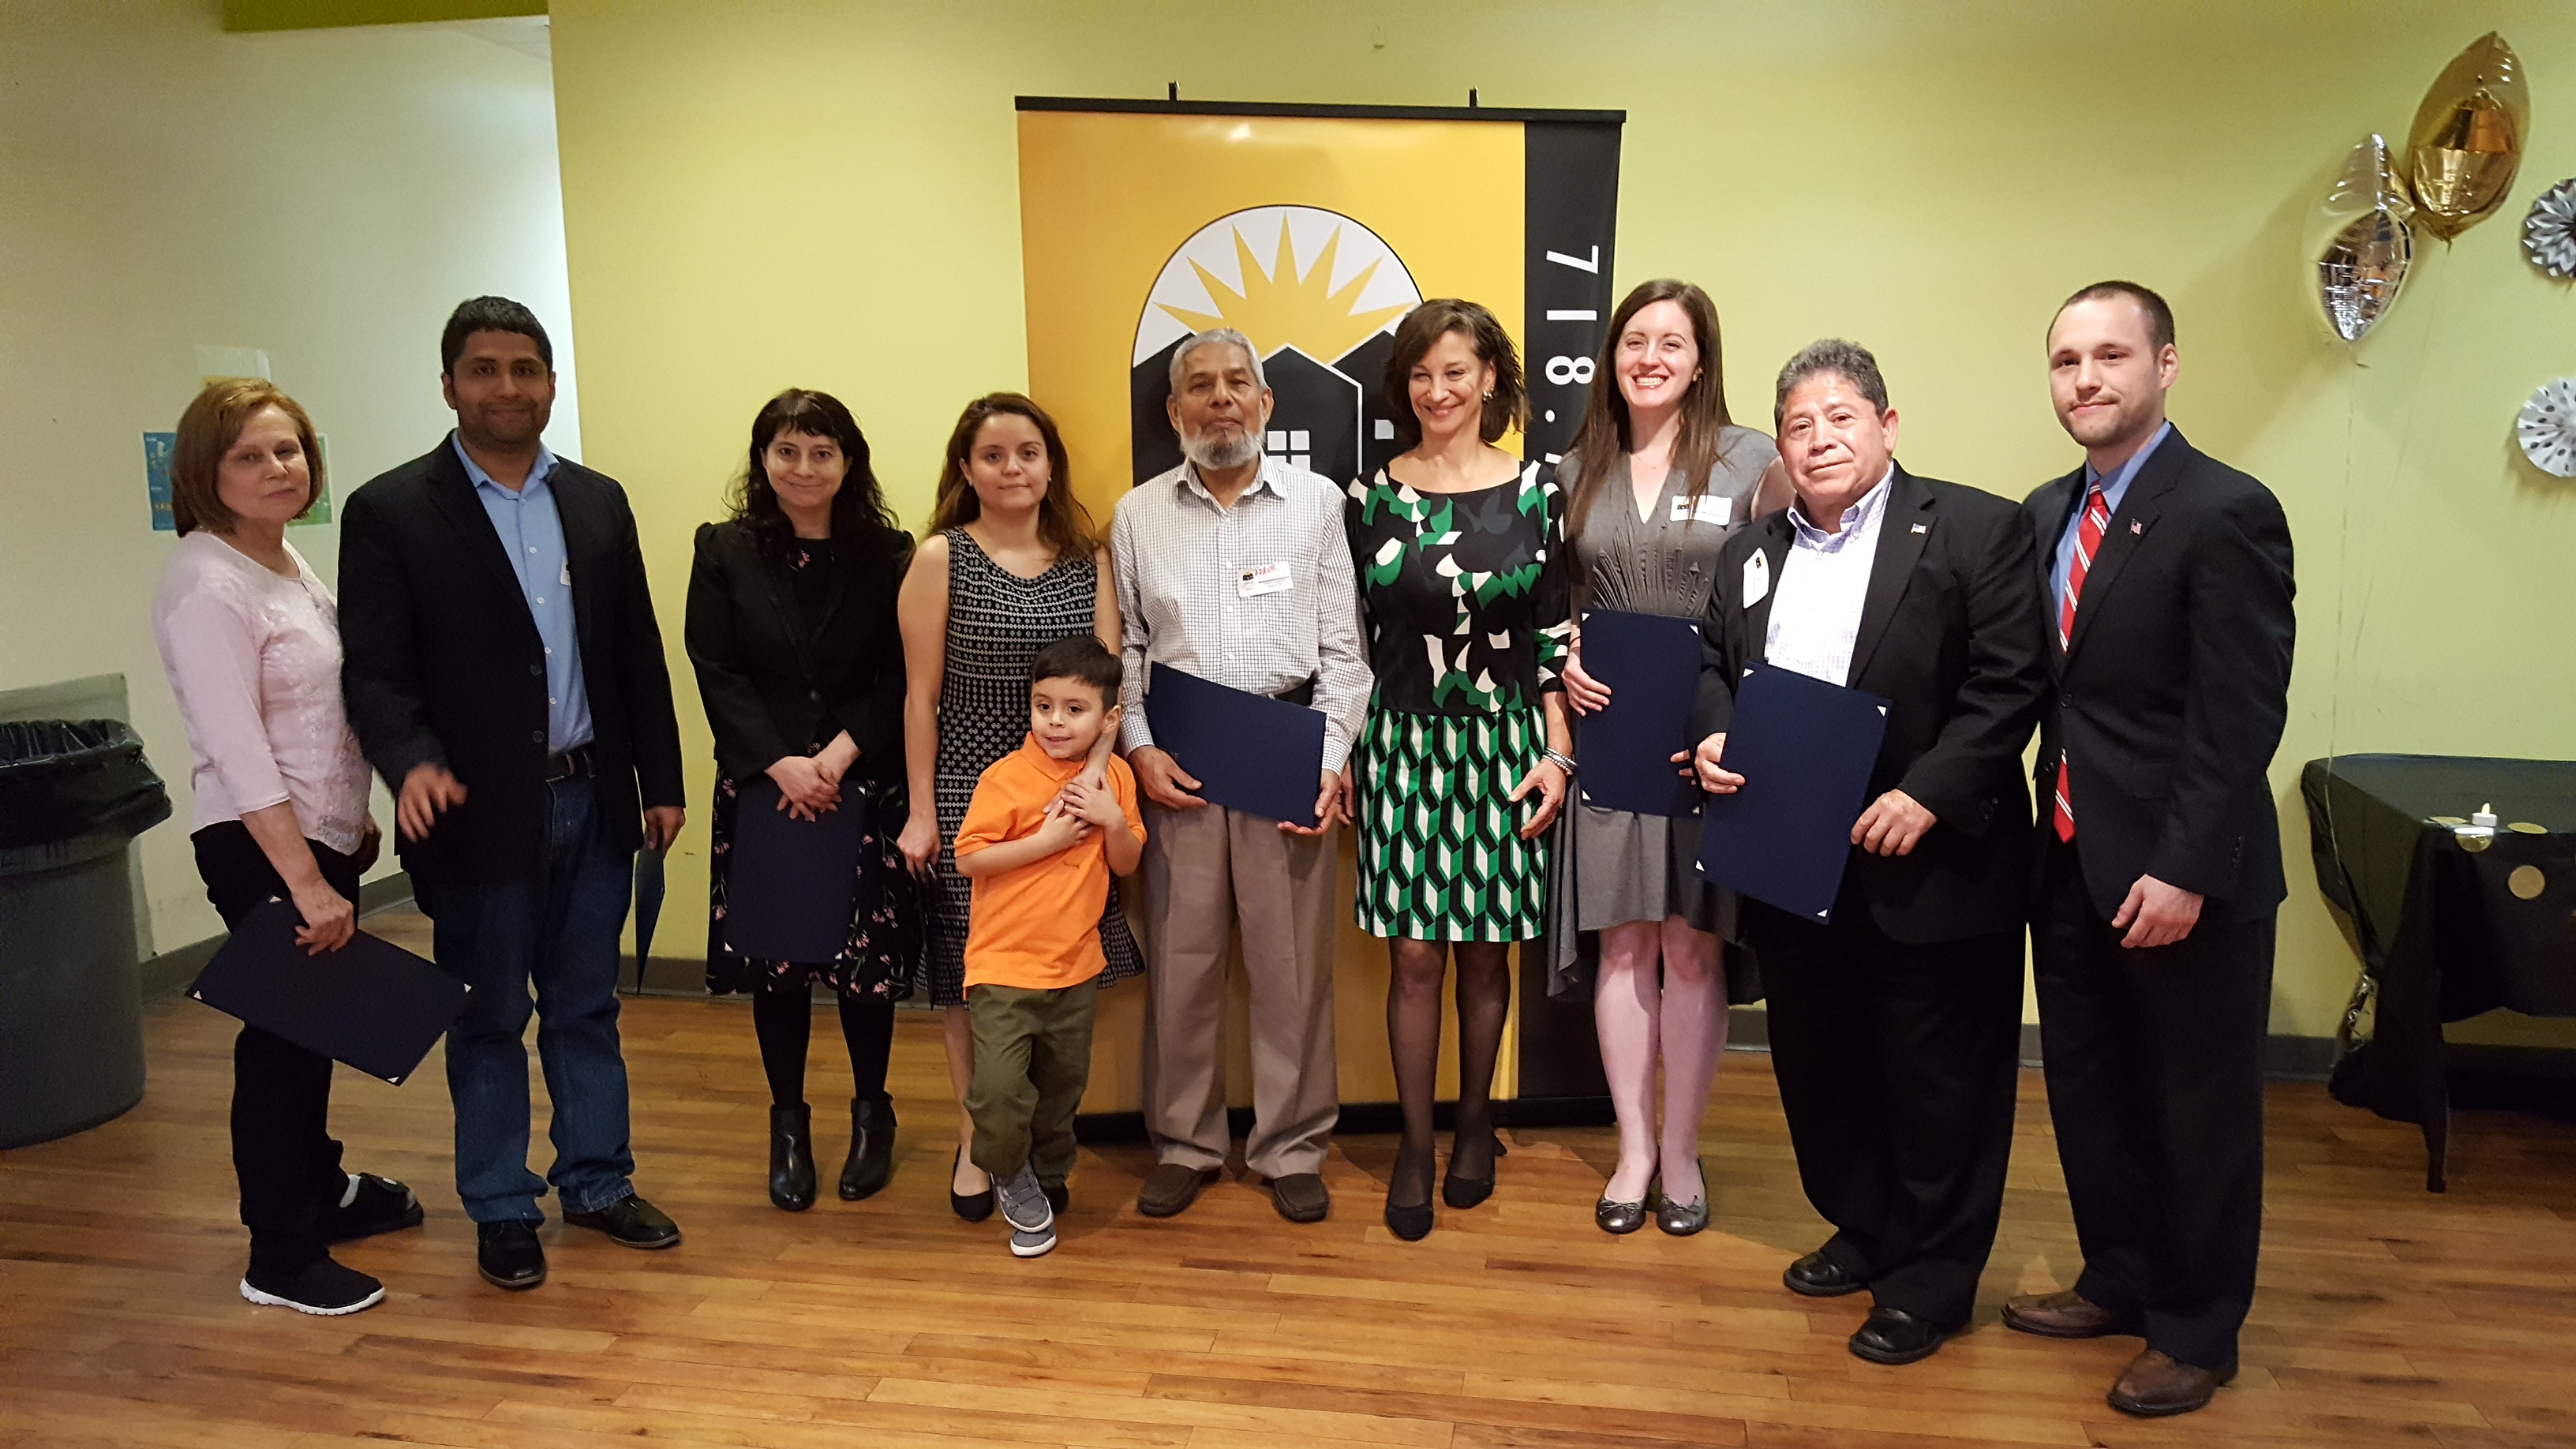 Our Volunteers of the Year Award winners: Patricia Shubert, Francisco Mena, Jennifer Silverman, Shyvonne Noboa, Abdur Chowdhury, with SCS Executive Director Judy Zangwill, Emily Vertosick, Jairo Bernal, and Assemblyman Brian Barnwell.